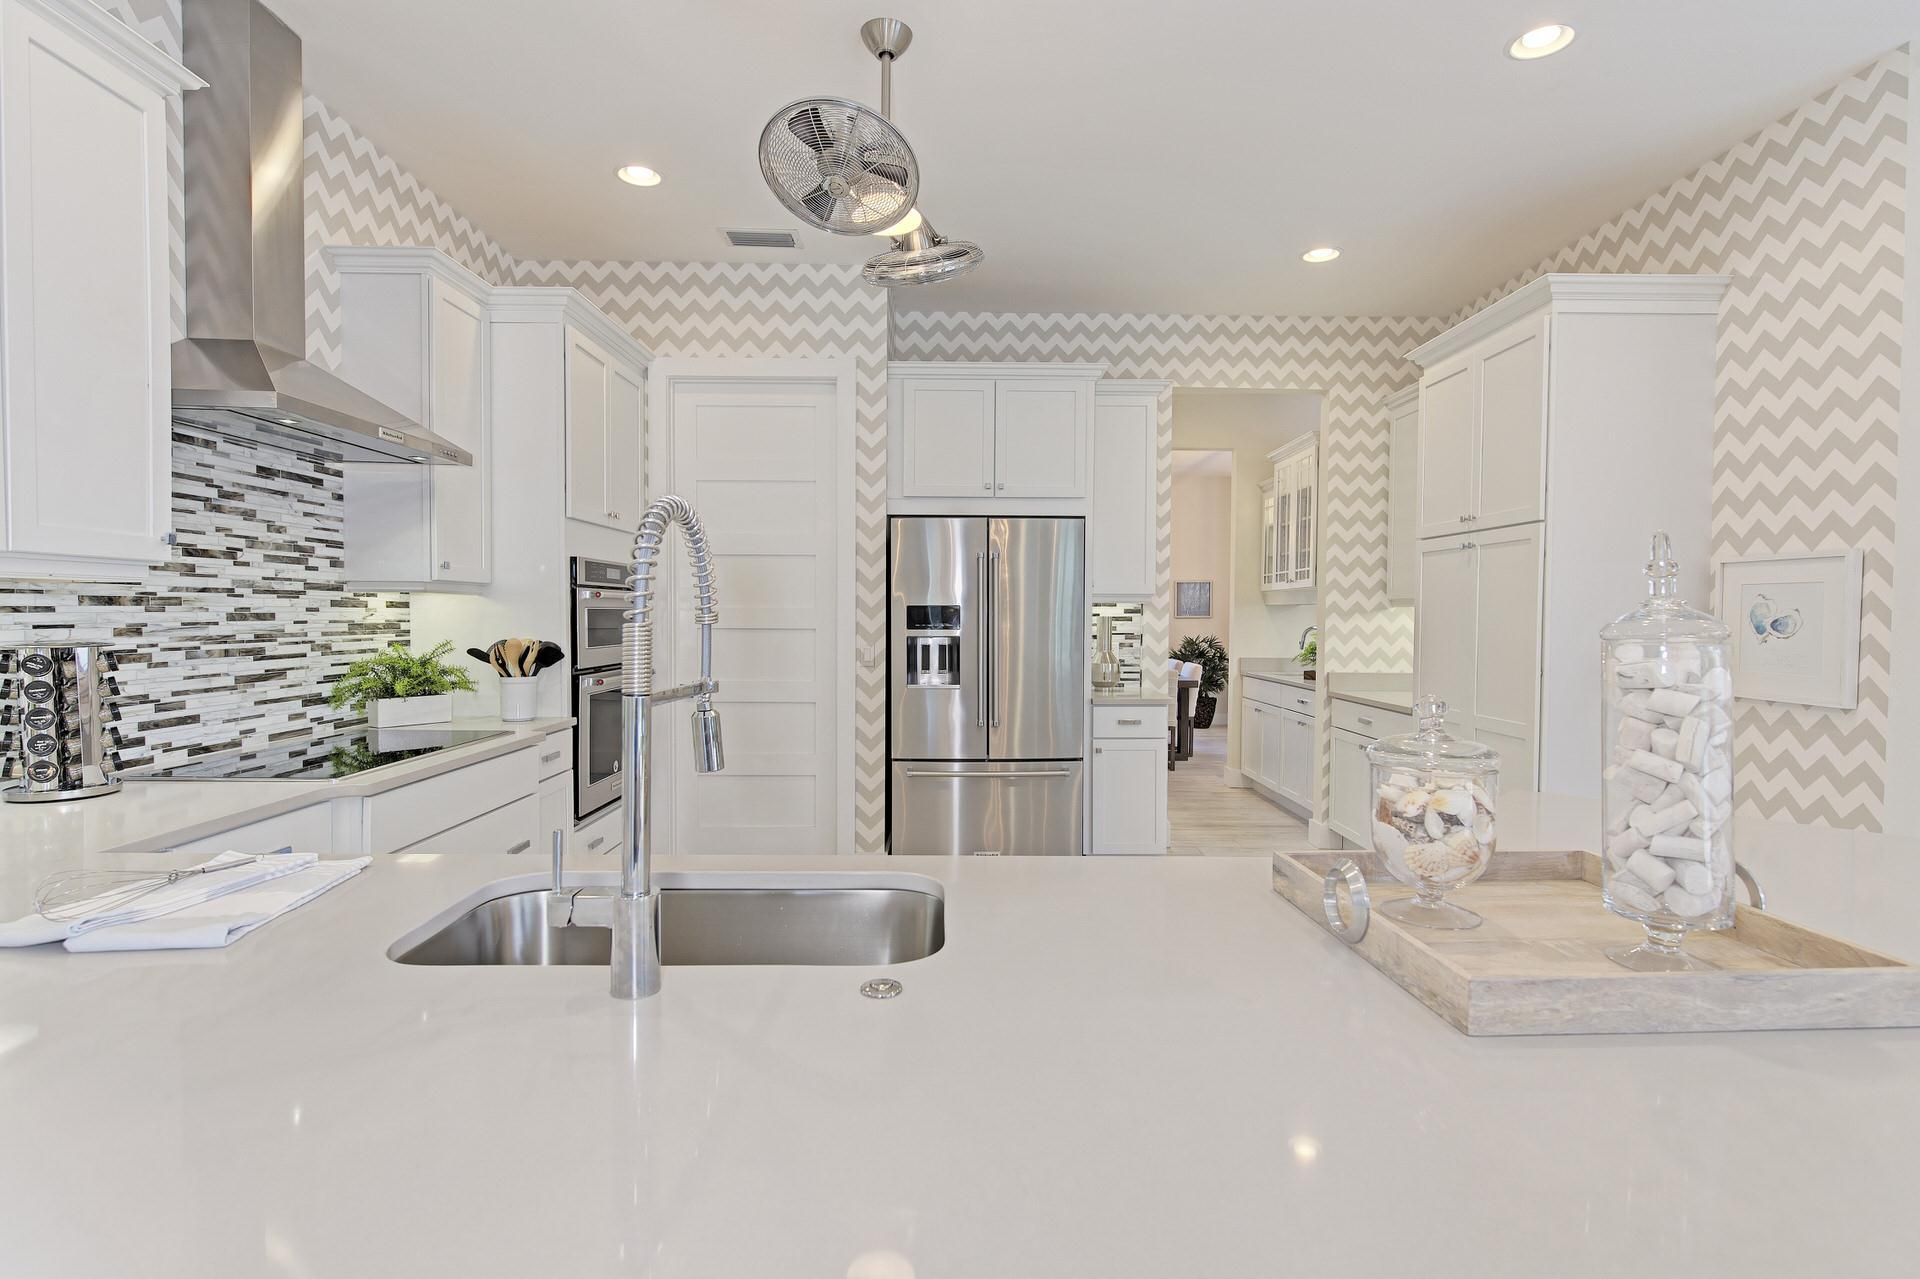 Kitchen featured in the Barbados 2800 3 Car Garage By Medallion Home in Sarasota-Bradenton, FL